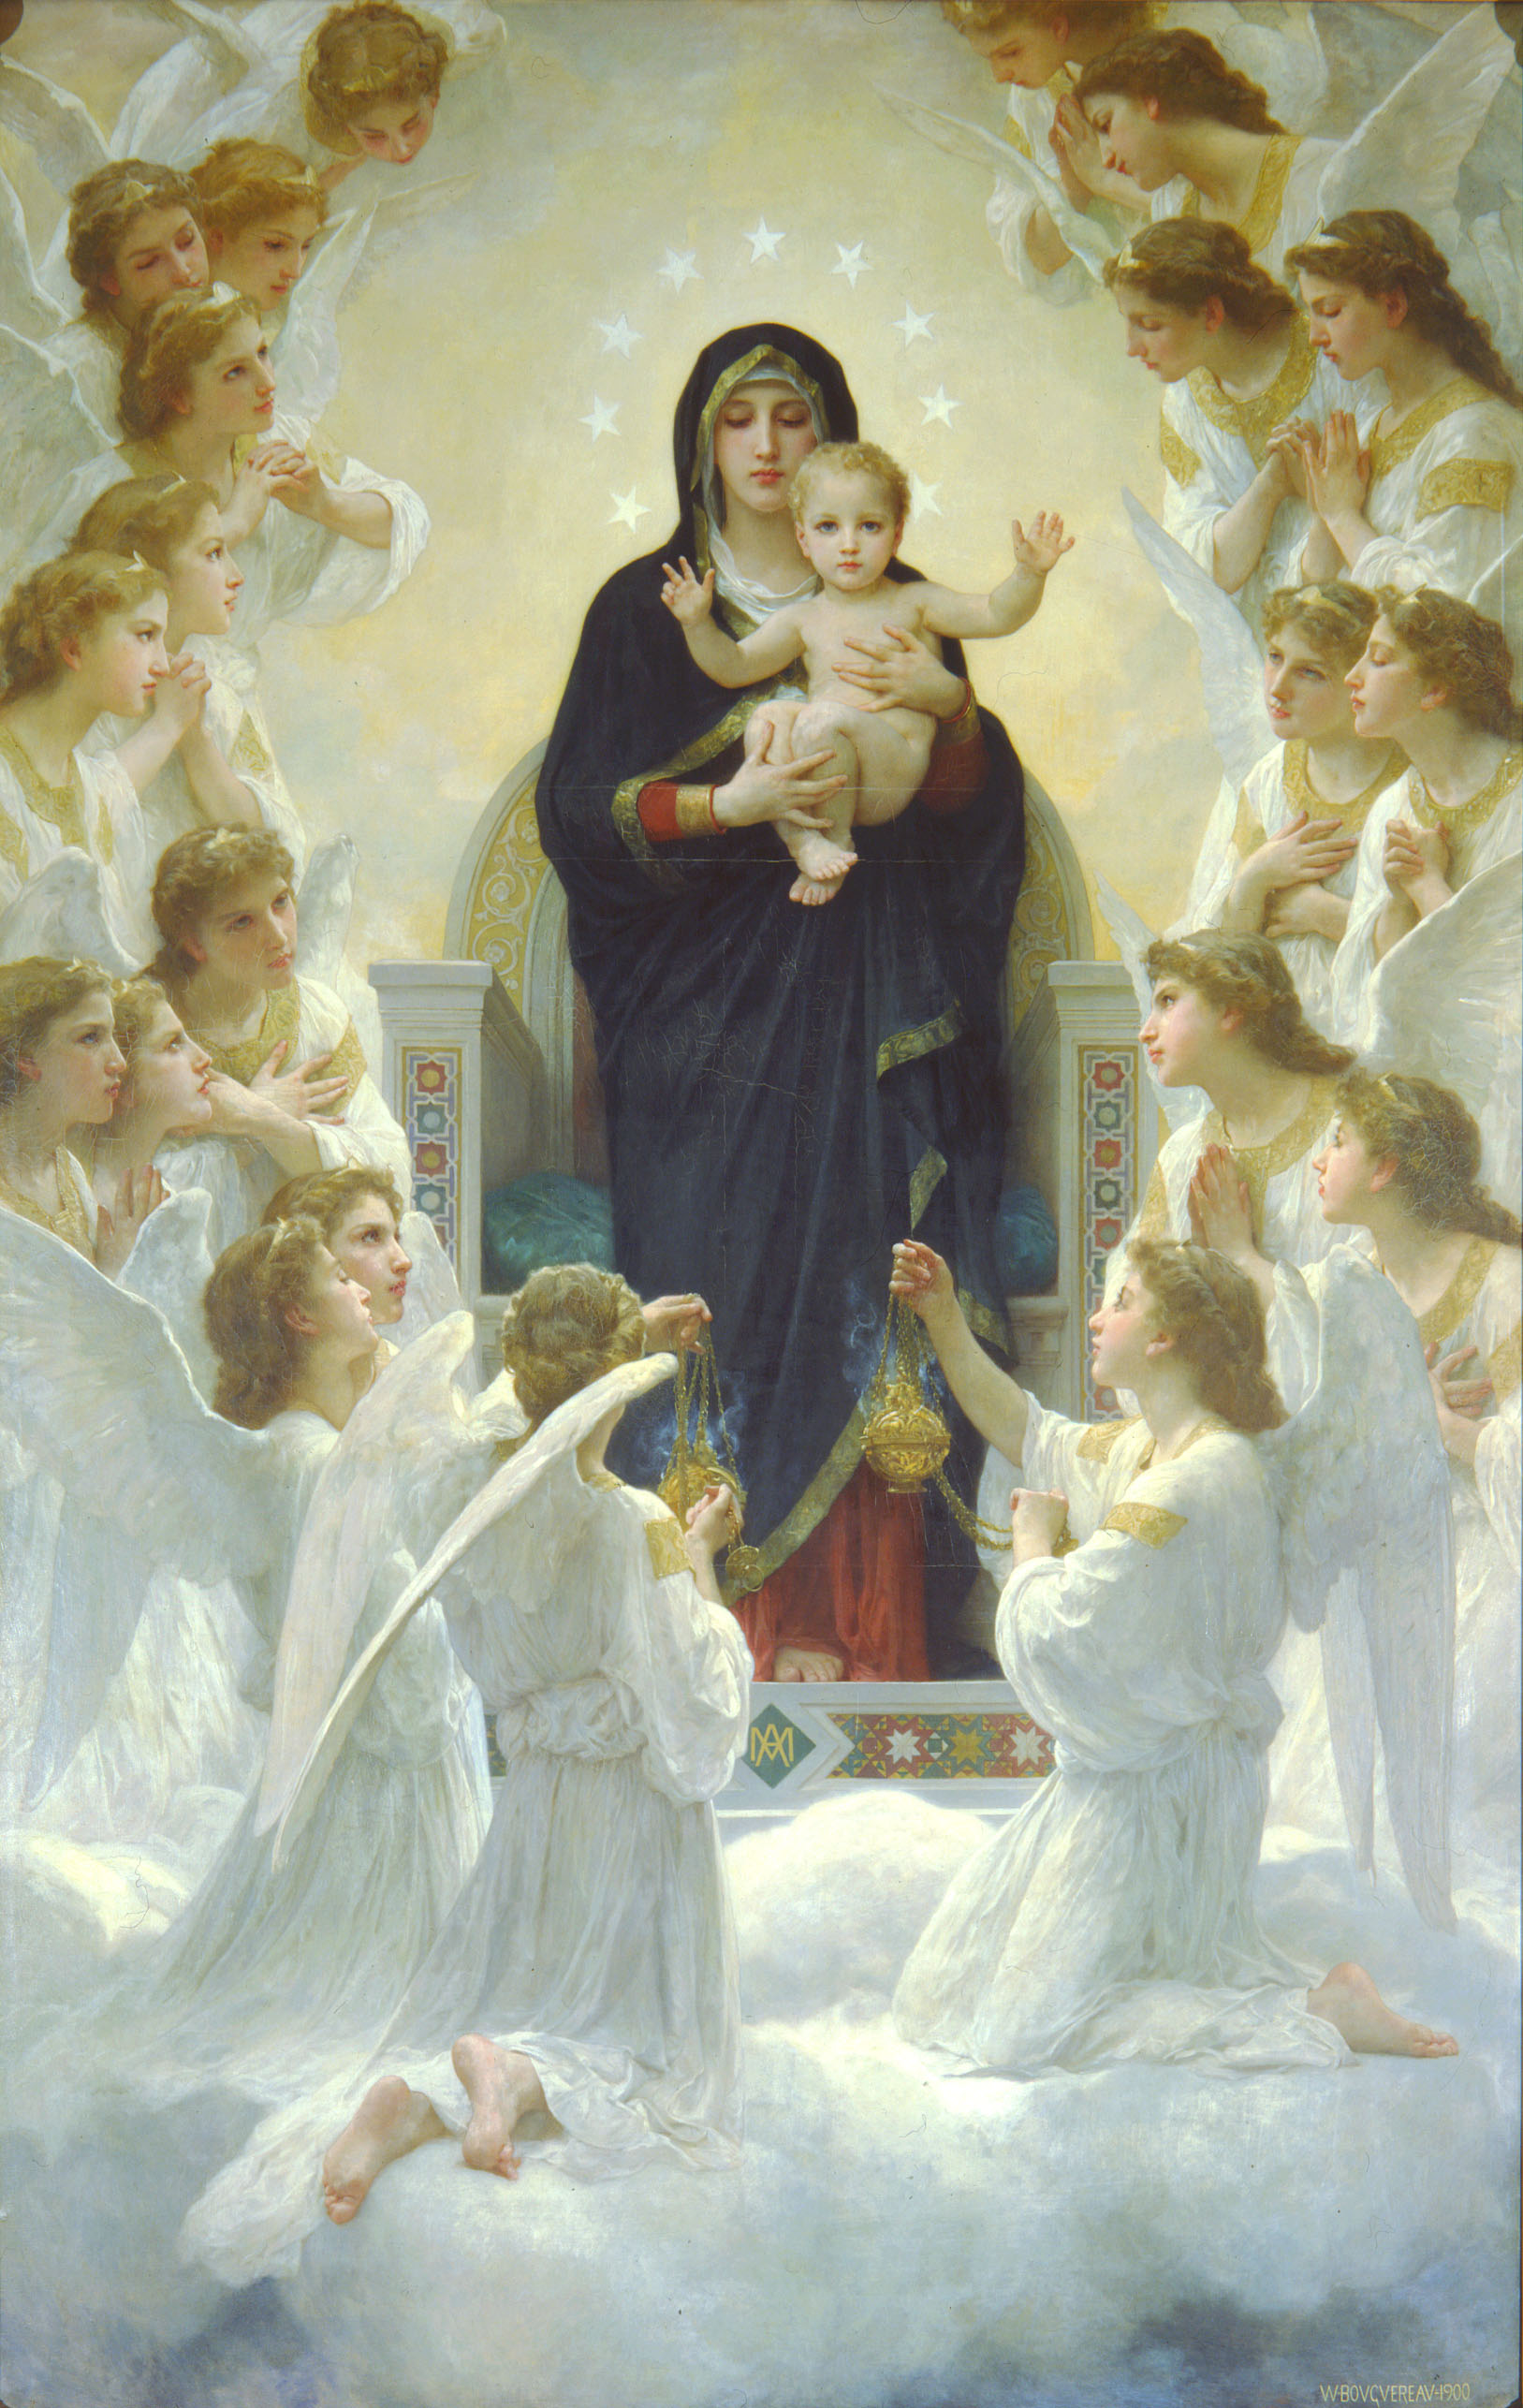 File:William-Adolphe Bouguereau The Virgin With Angels.jpg ...